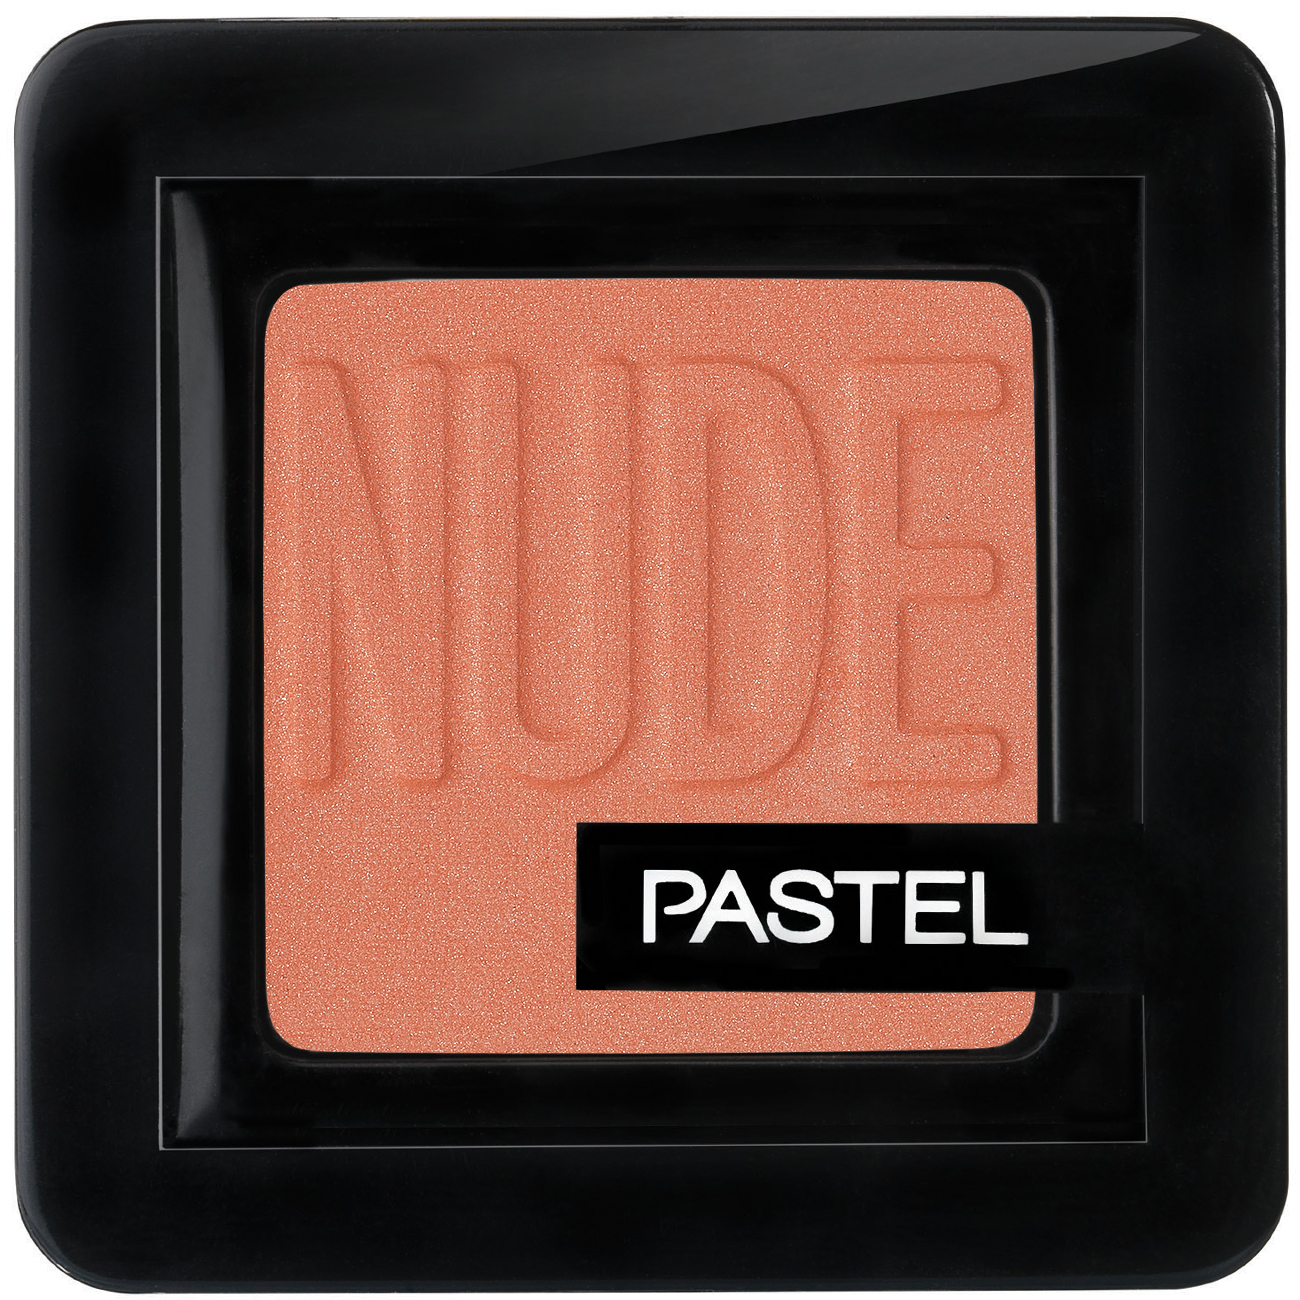 Pastel Nude Single Eyeshadow - Tekli Far 85 Peach